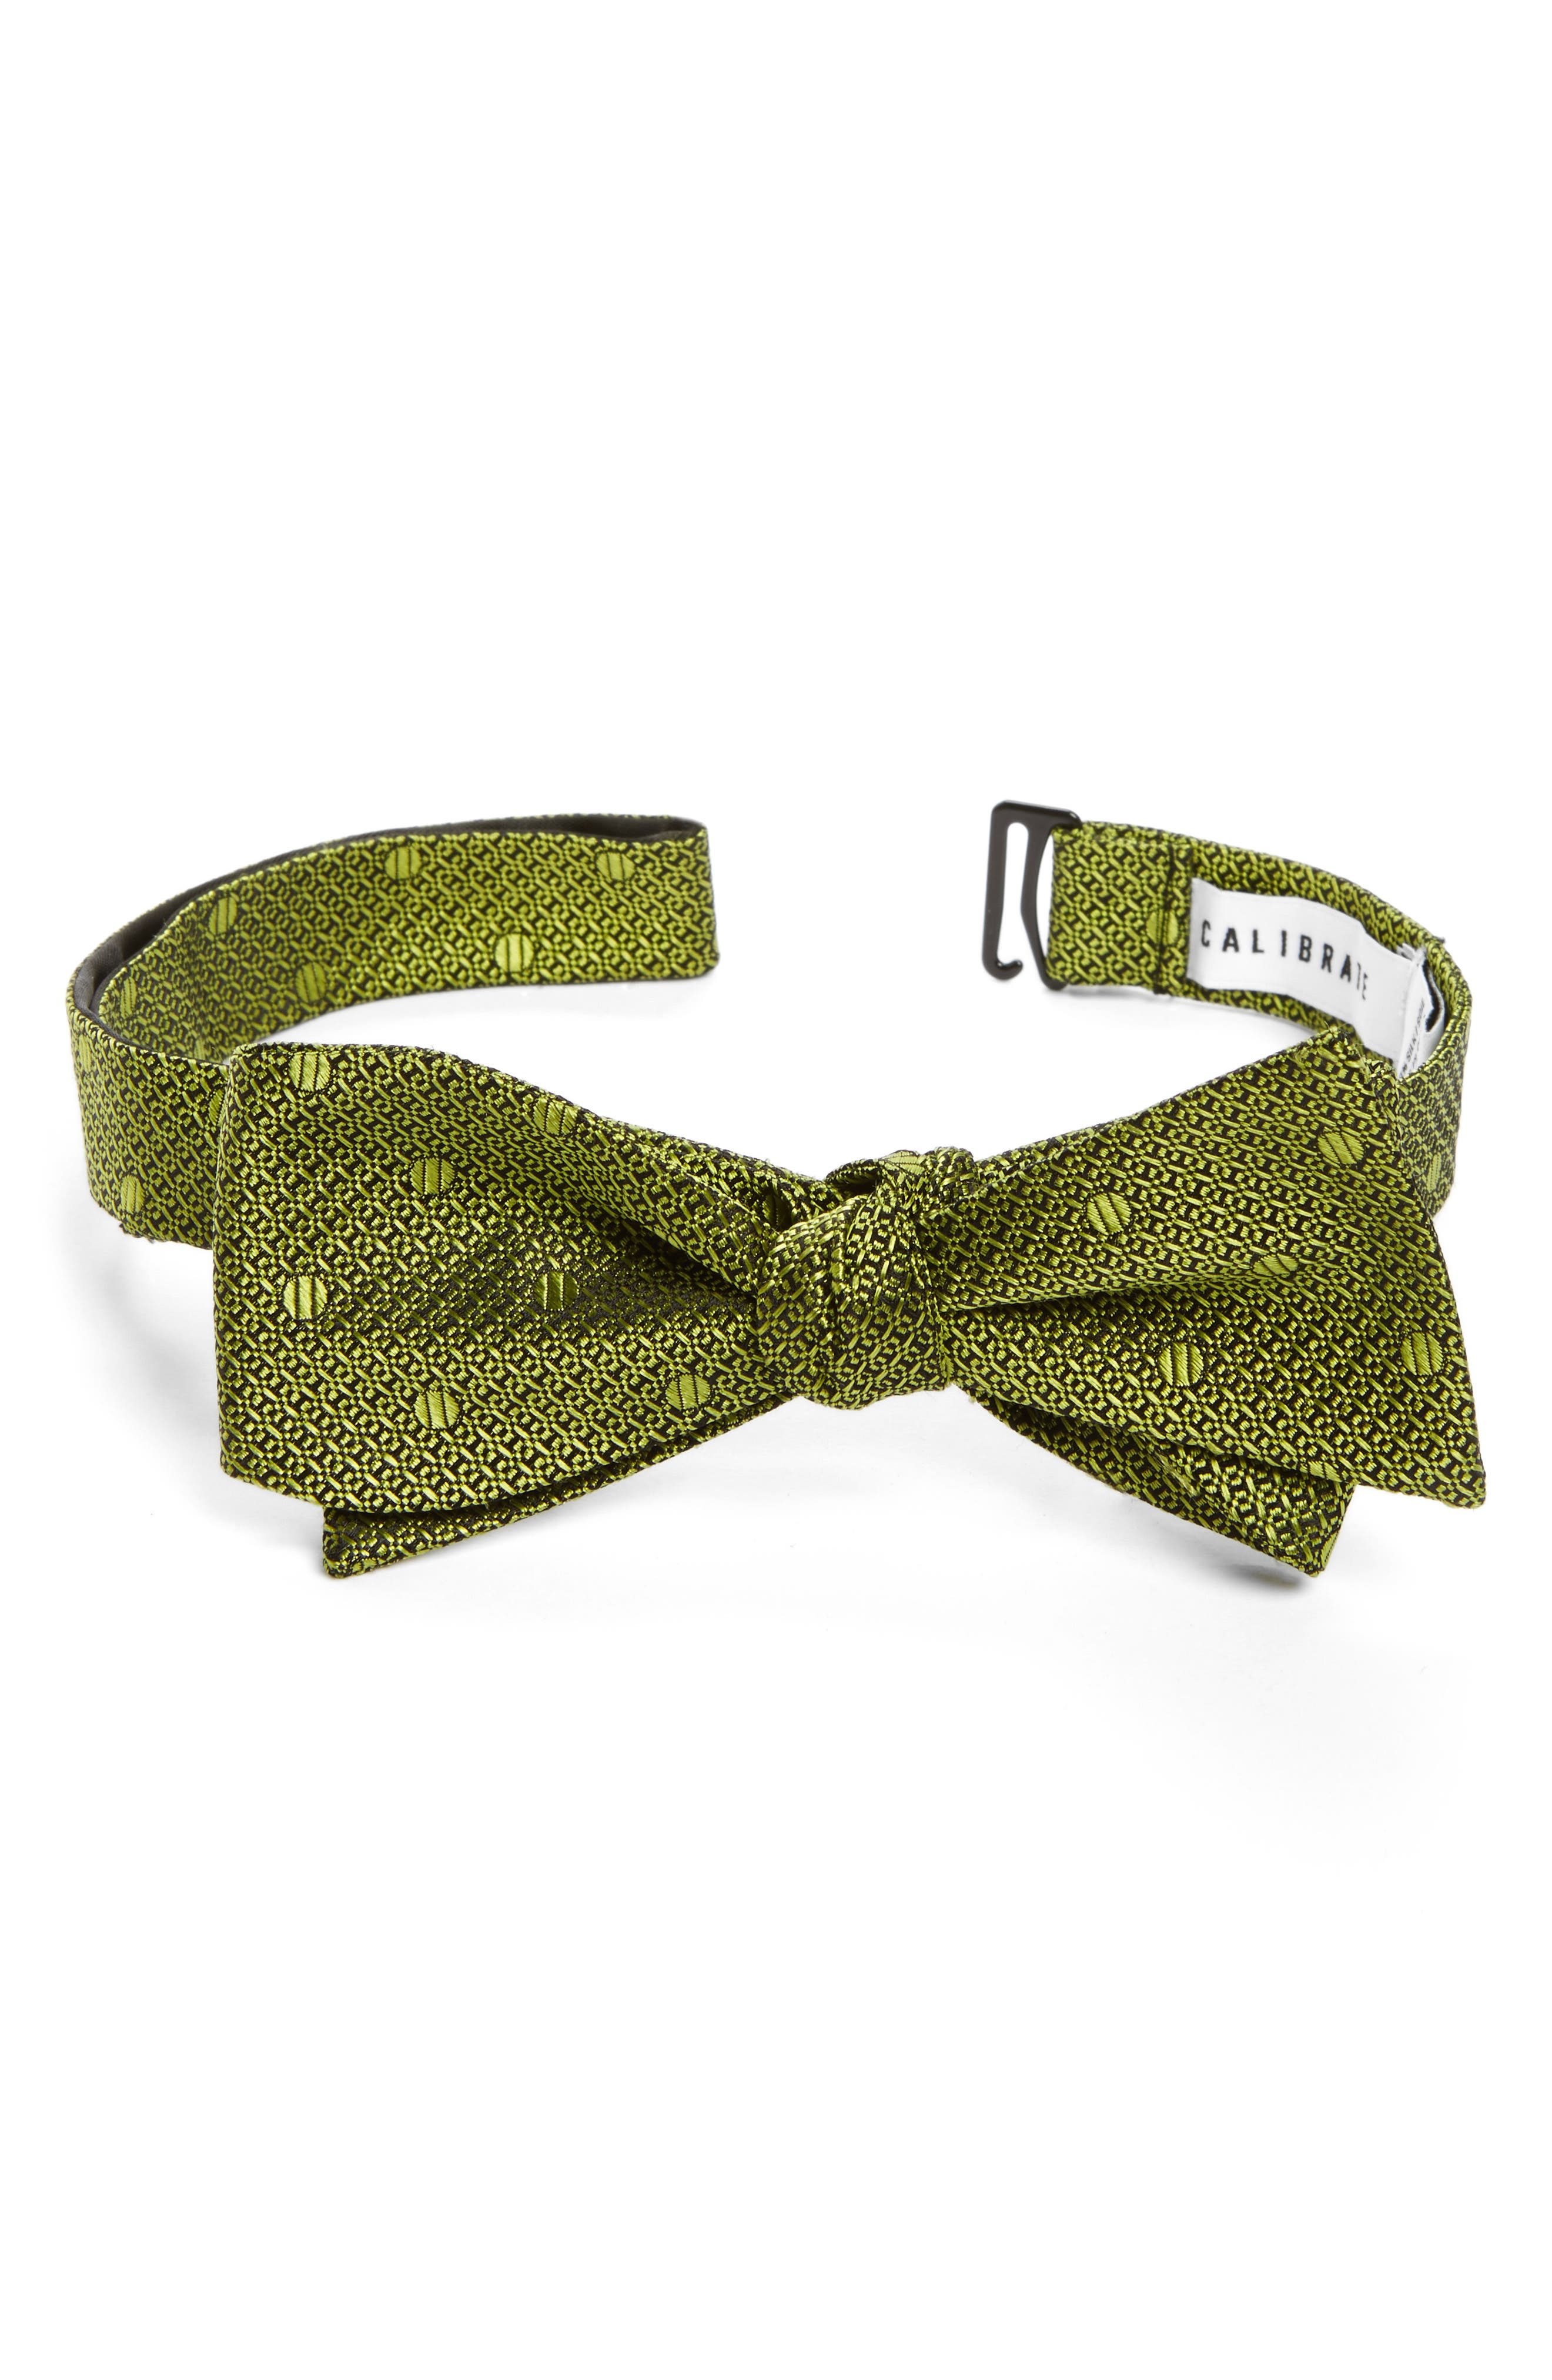 Alternate Image 1 Selected - Calibrate Textured Dot Silk Bow Tie